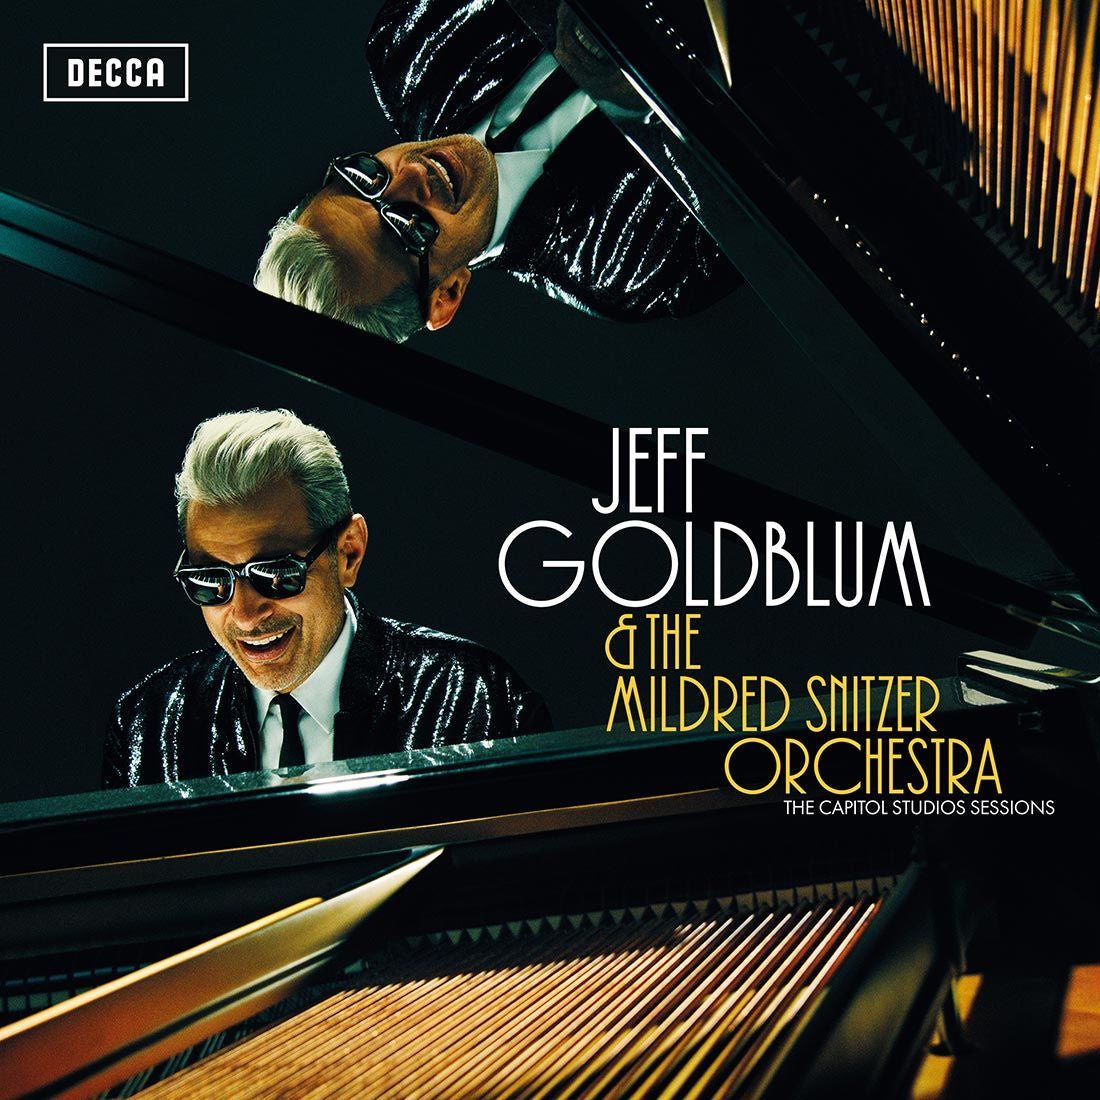 Jeff Goldblum & The Mildred Snitzer Orchestra - The Capitol Studios Sessions - New Vinyl 2 Lp 2018 Decca Import Pressing with Gatefold Jacket - Jazz / Standards